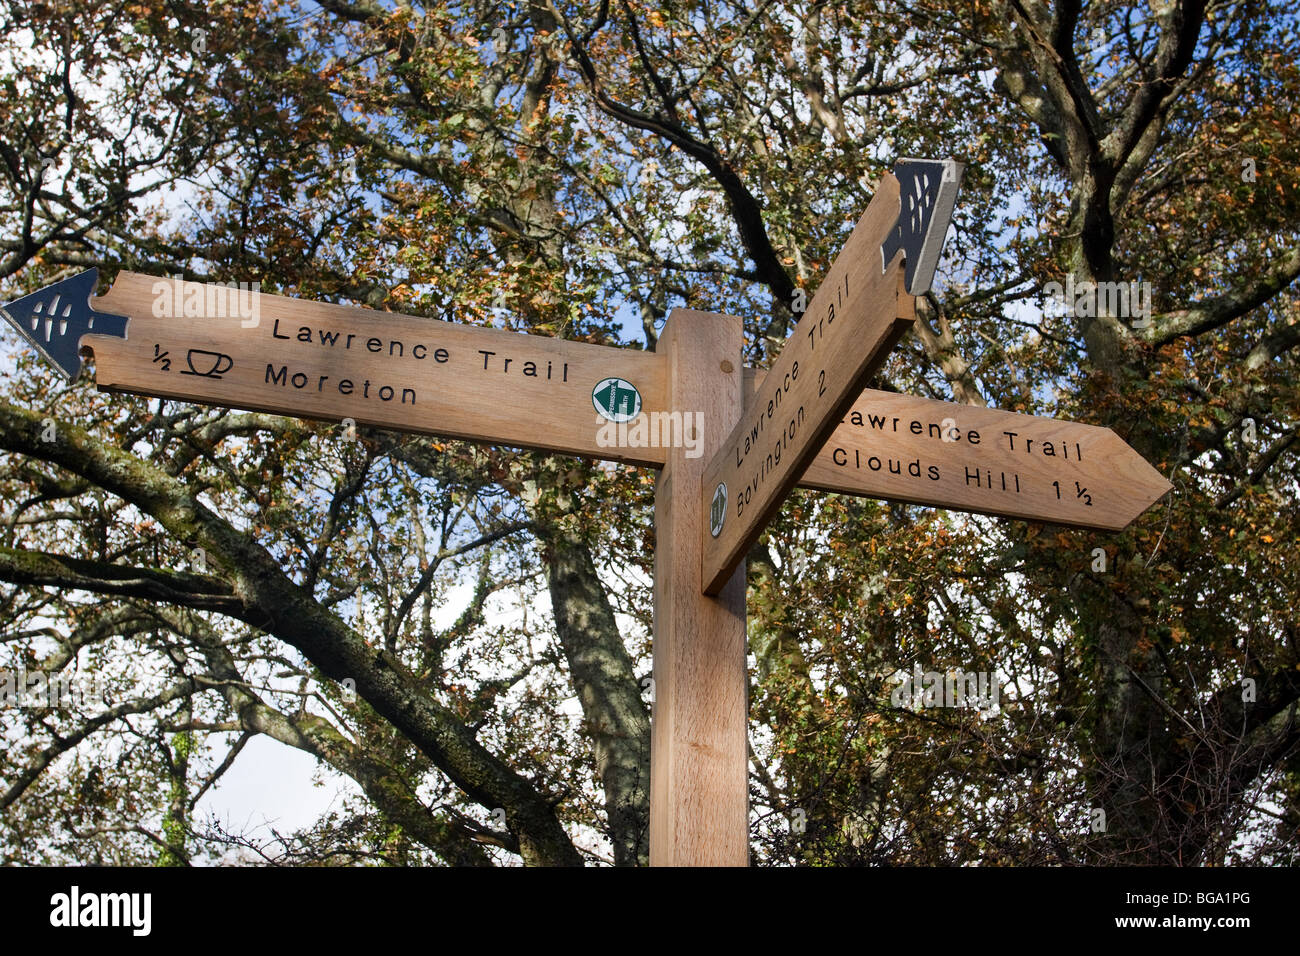 Sign on the Lawrence Trail which links Moreton where TE Lawrence is buried with Clouds Hill and Bovington - Stock Image